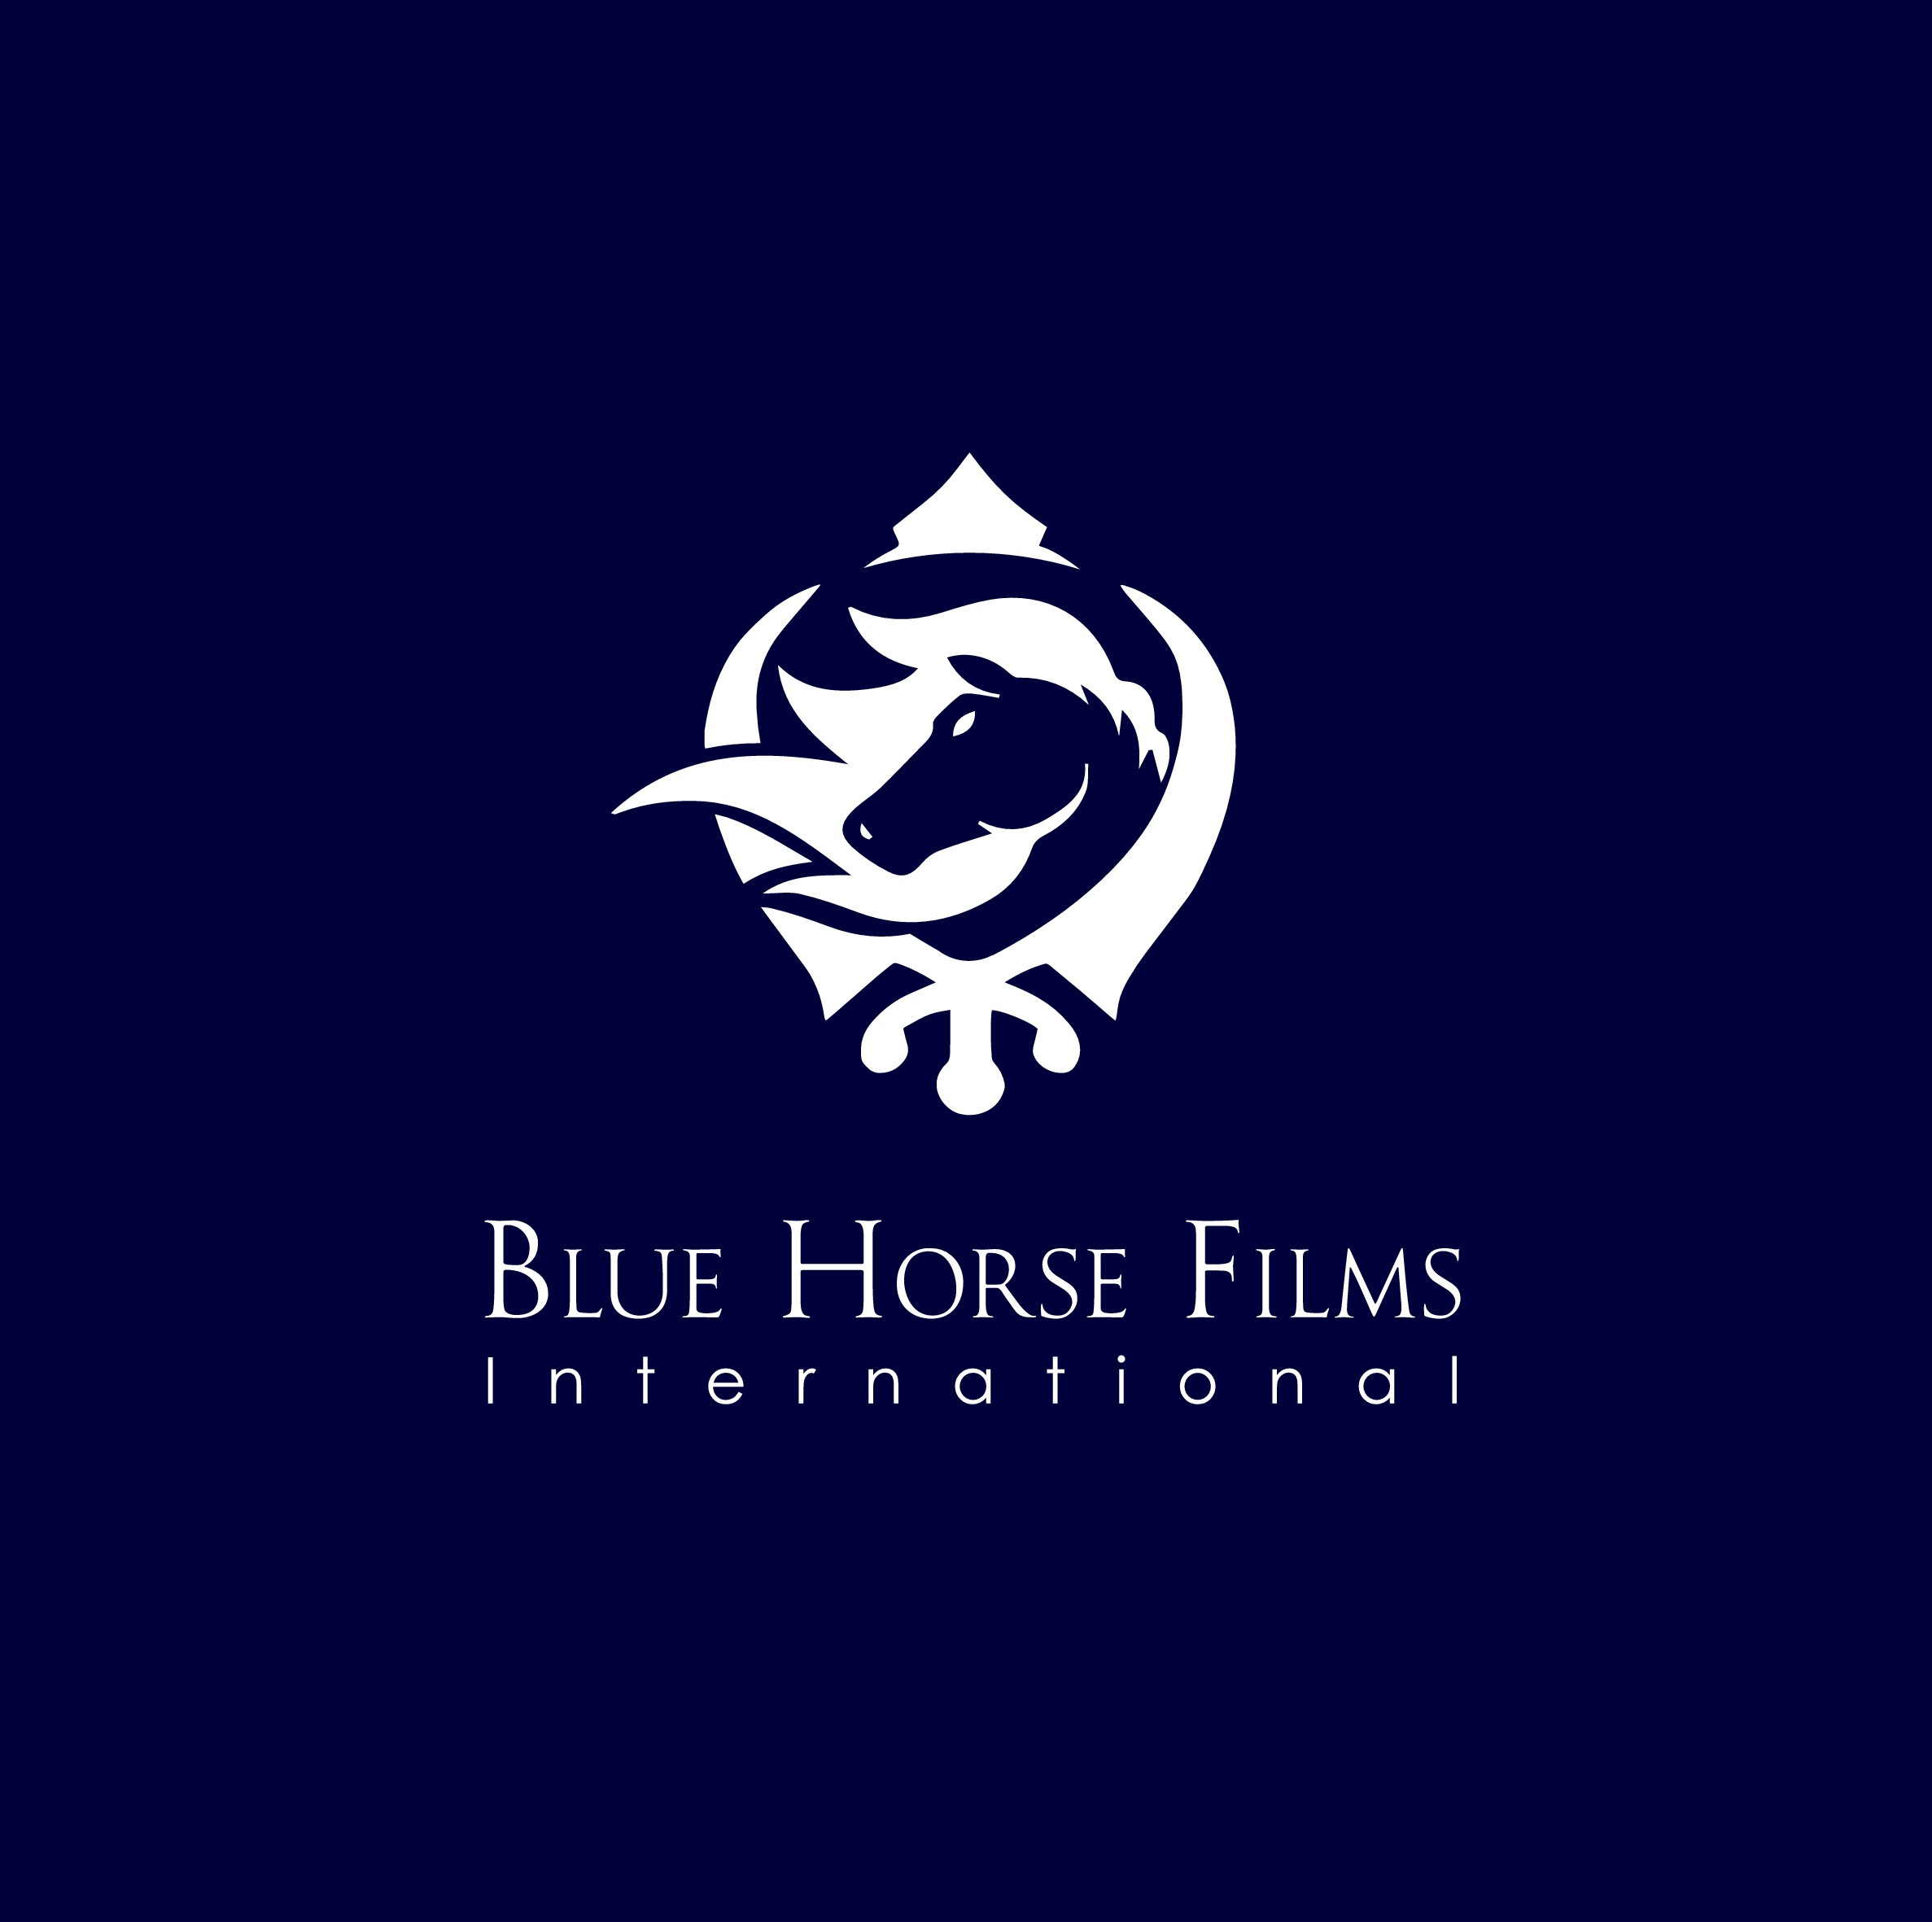 Create an Iconic Logo for an International Film Production Company